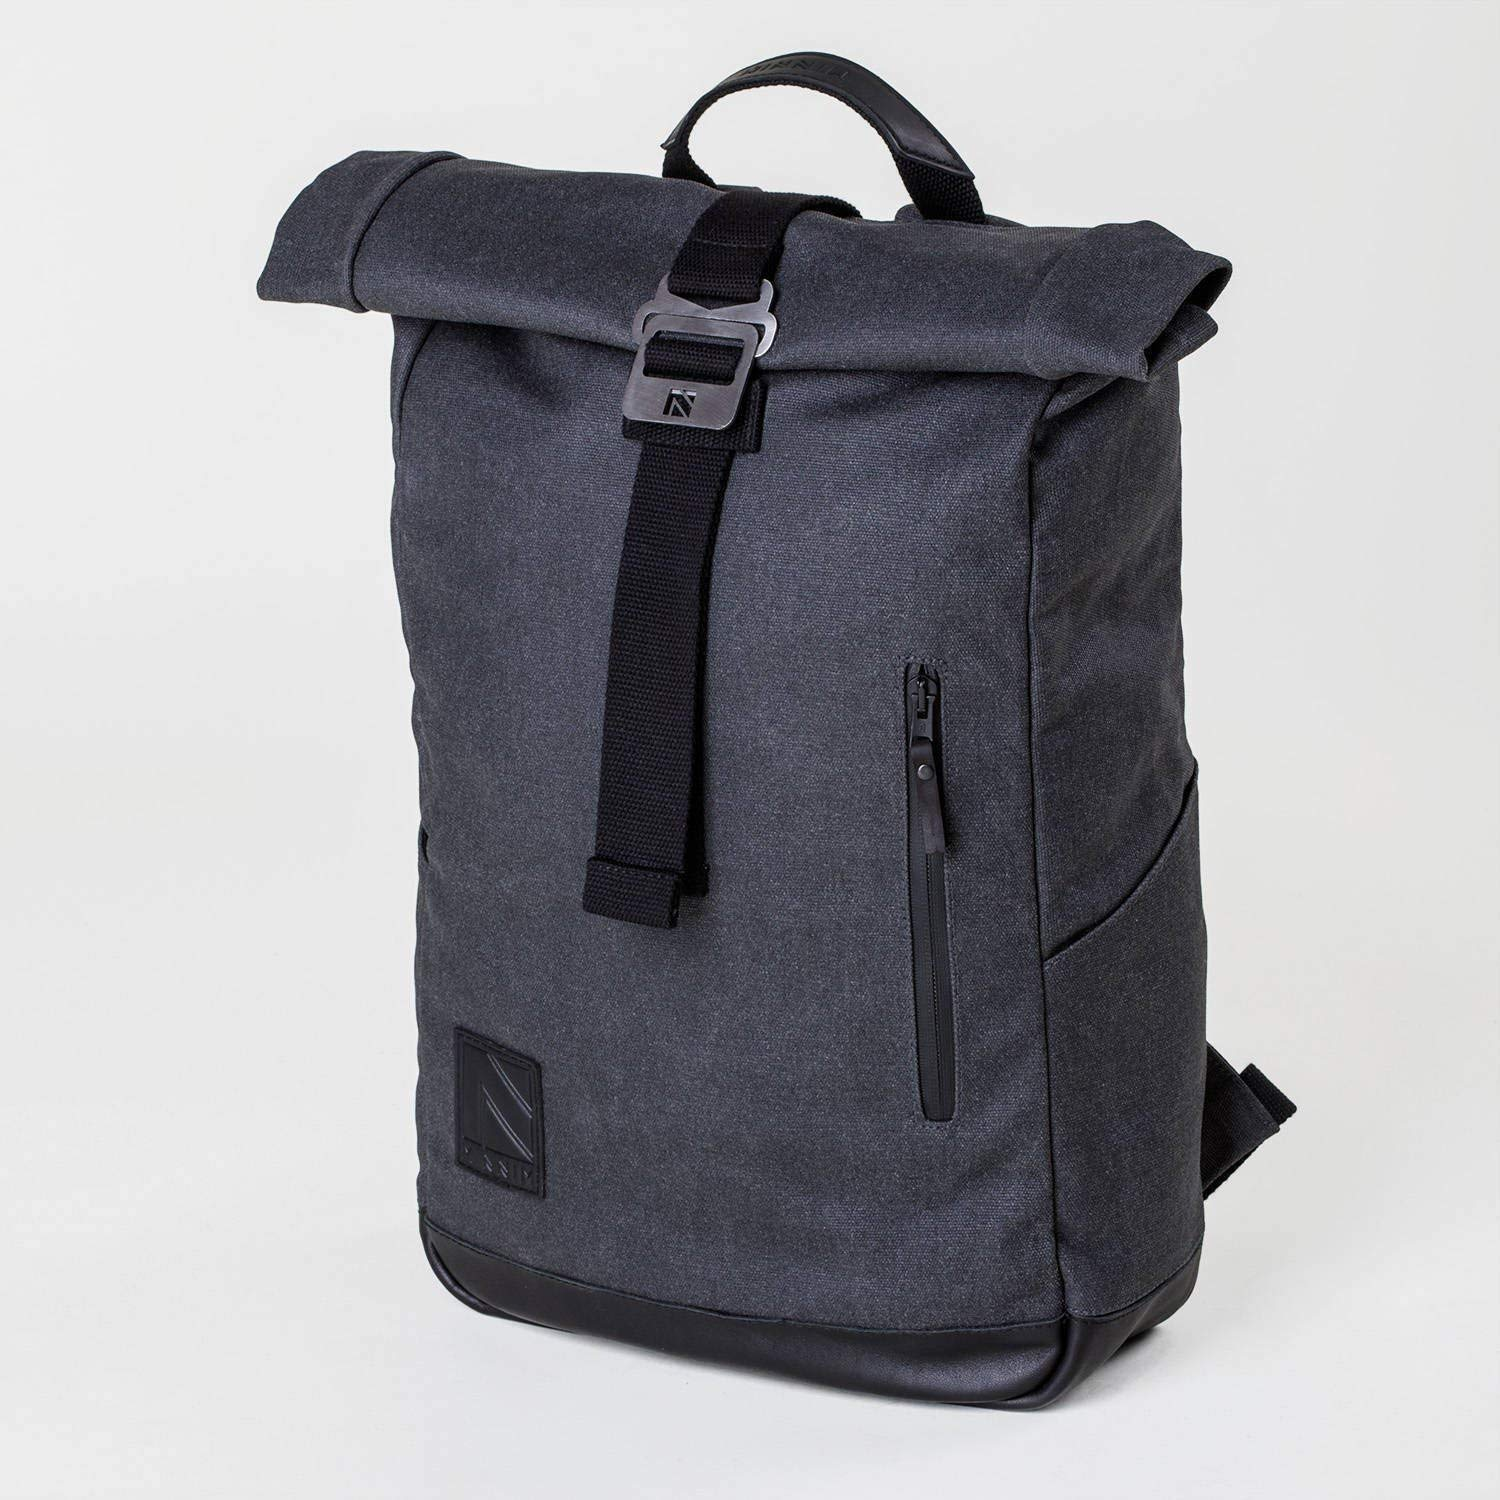 14b8173cd625 Amazon.com: Roll Top, Roll Top Backpack, Backpack, Laptop Backpack ...